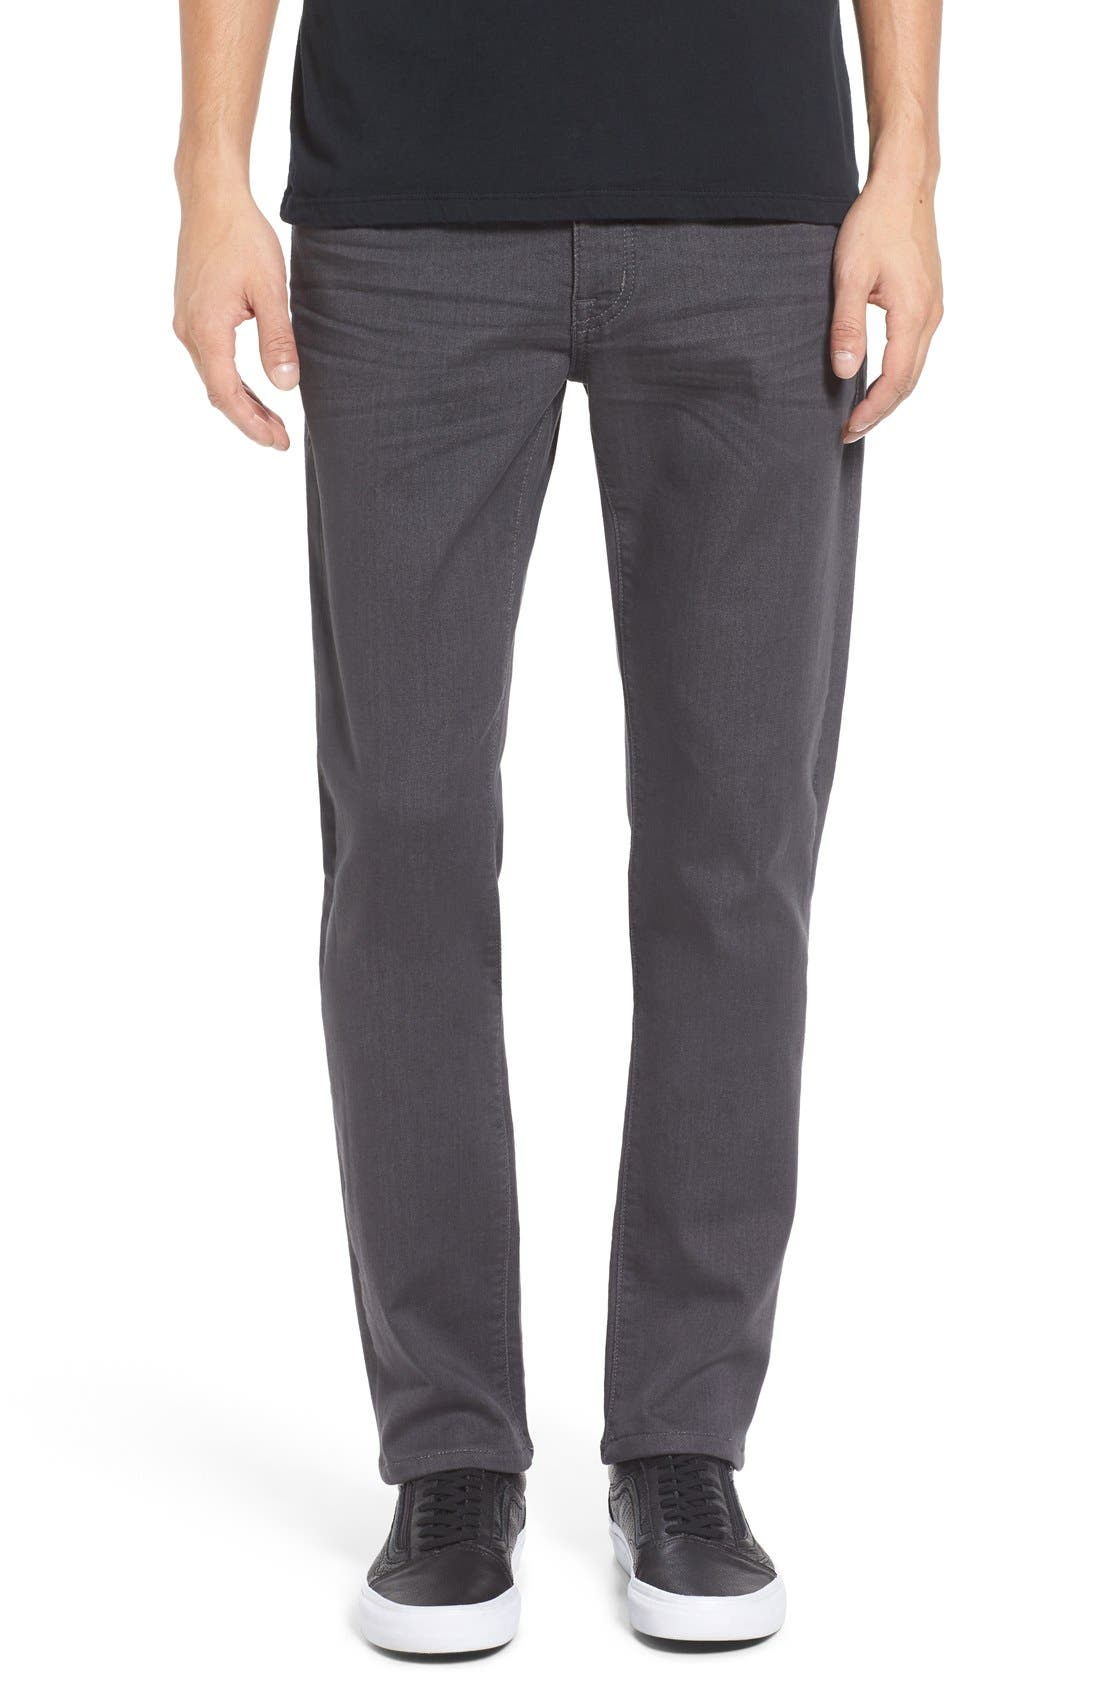 Torino Slim Fit Jeans,                         Main,                         color, 020